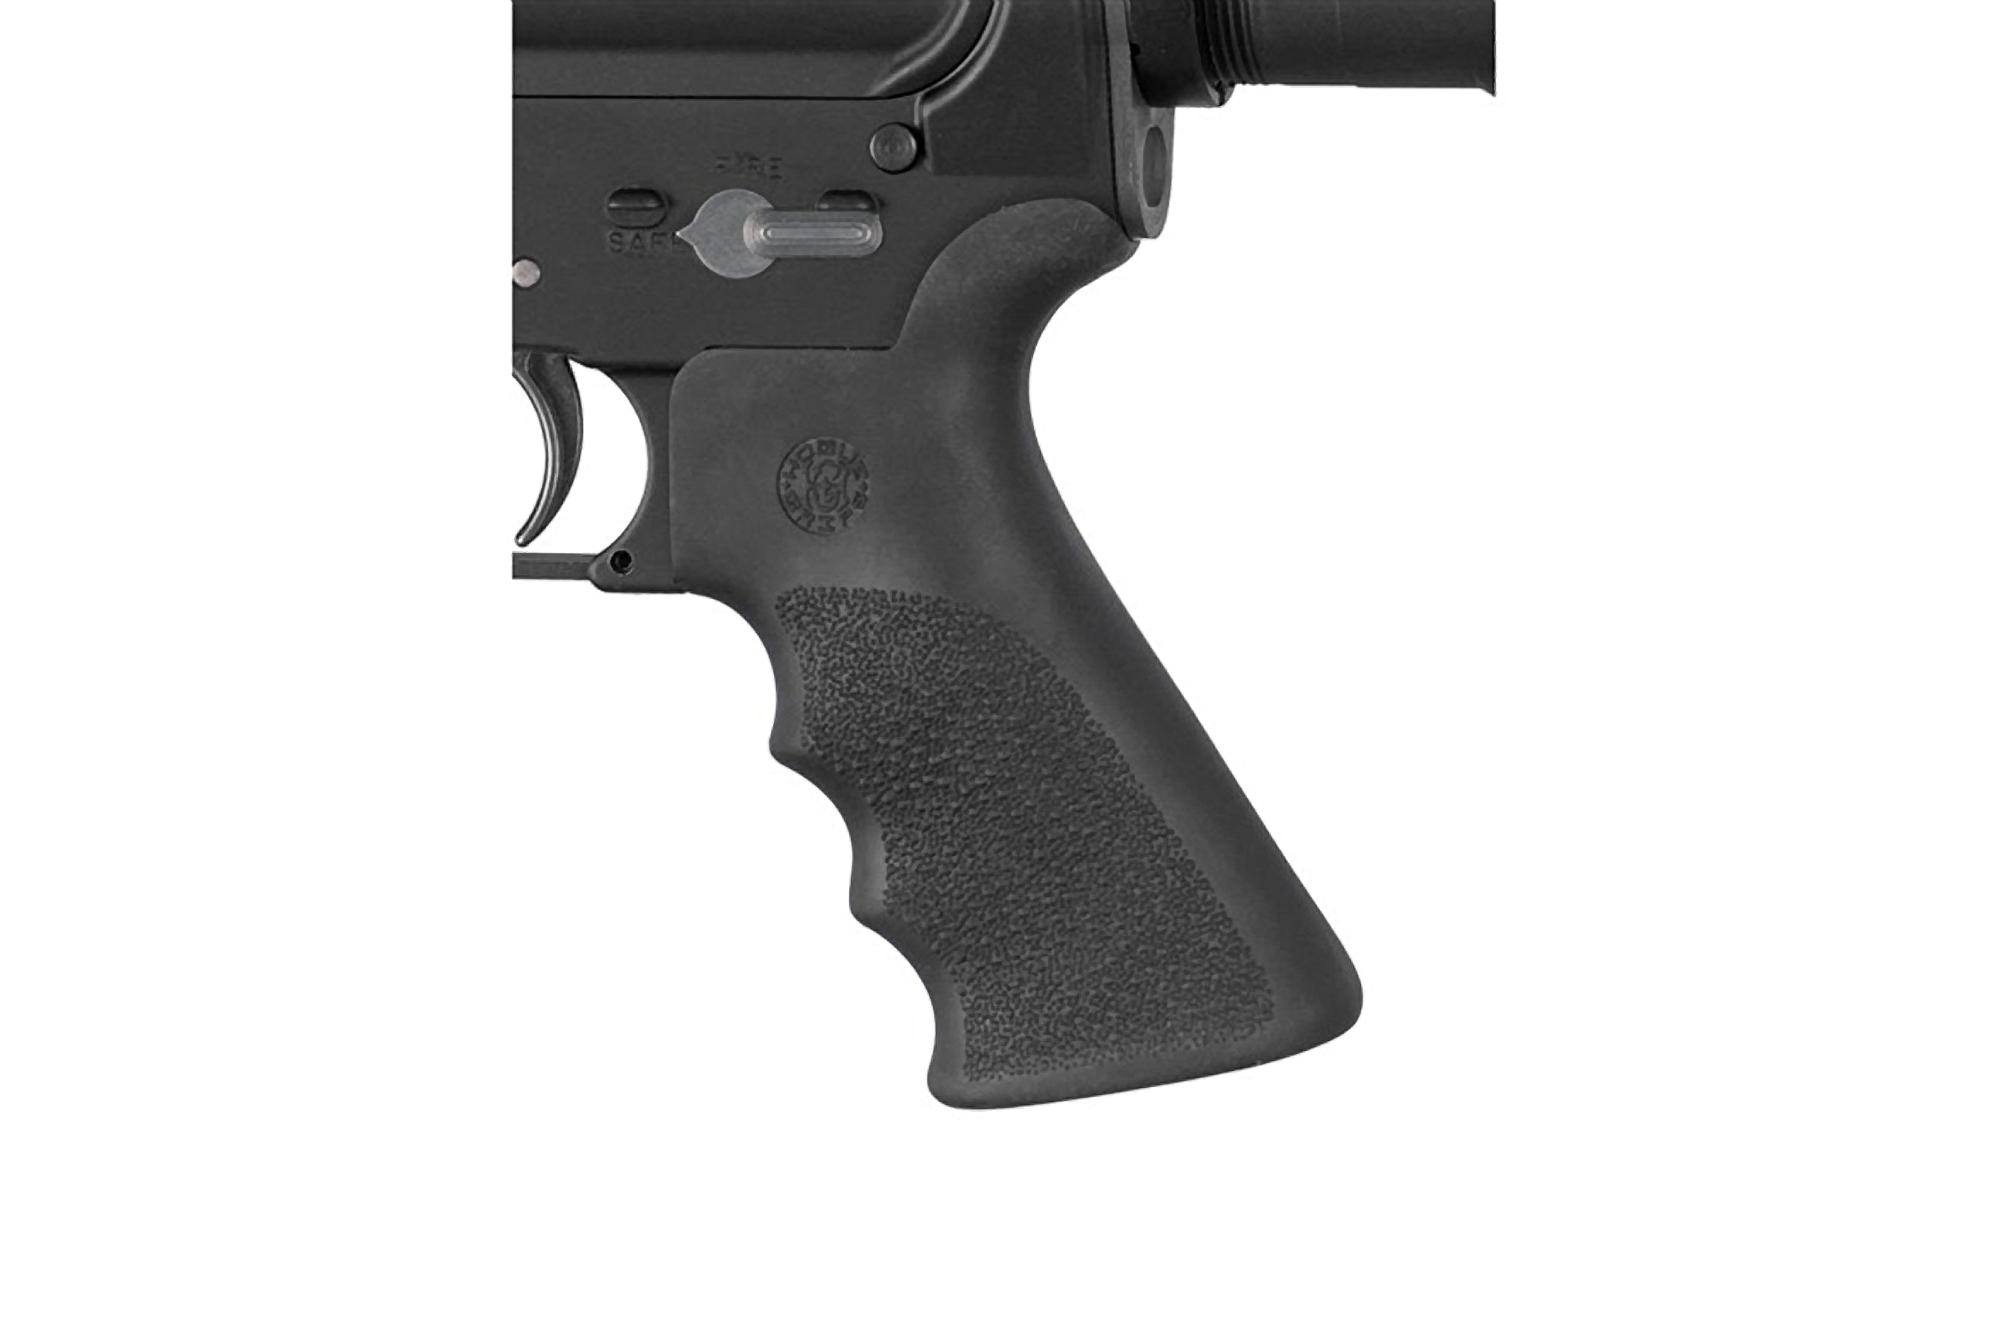 Hogue AR-15 OverMolded Pistol Grip - Beaver Tail - Finger Grooves - Black